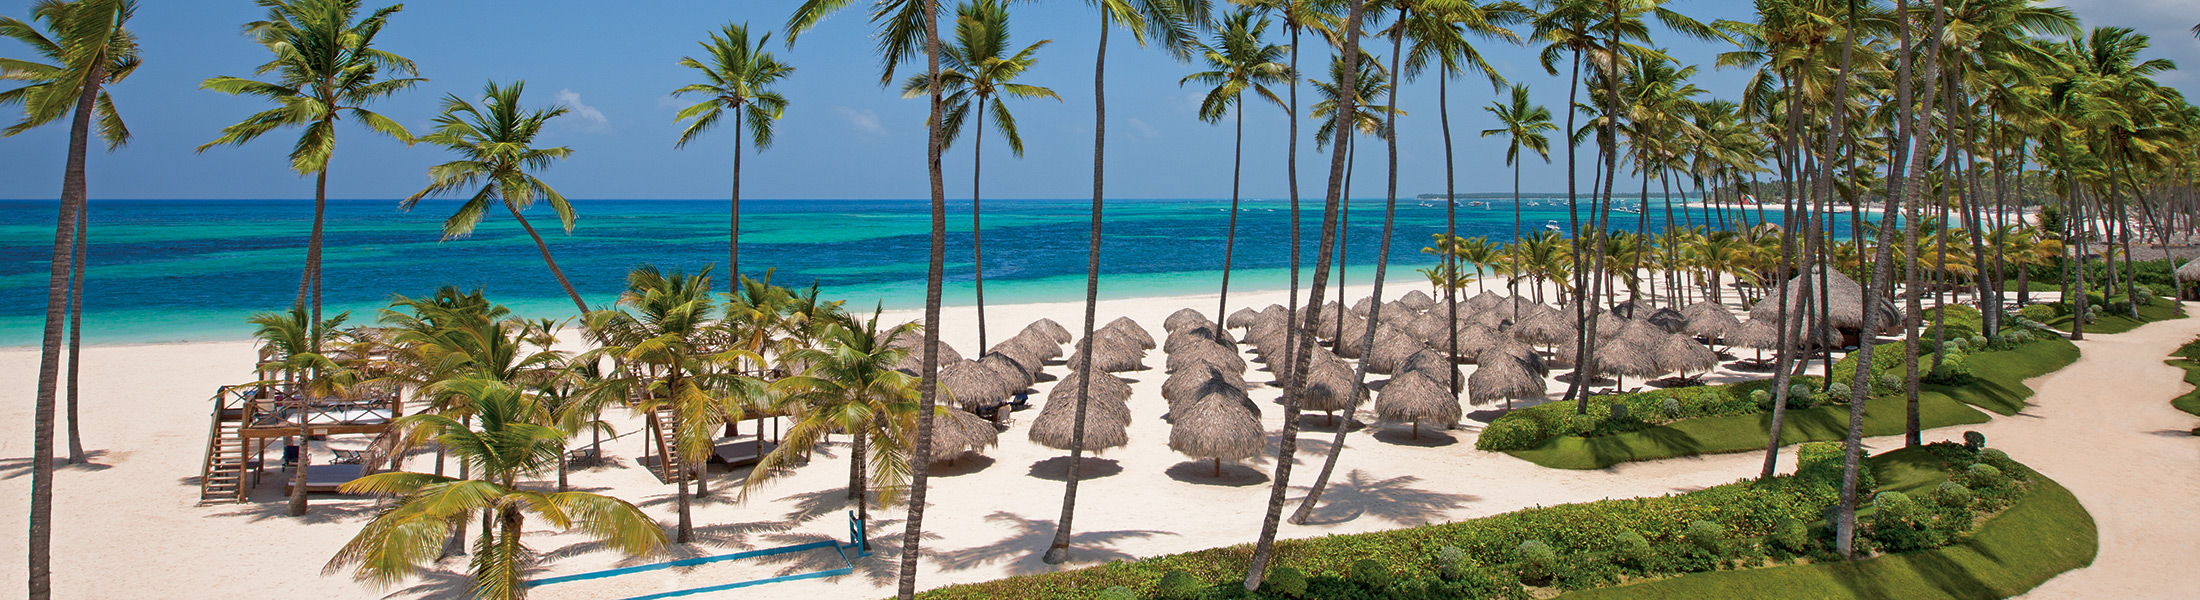 Palm trees and sun loungers on the beach at Secrets Royal Beach